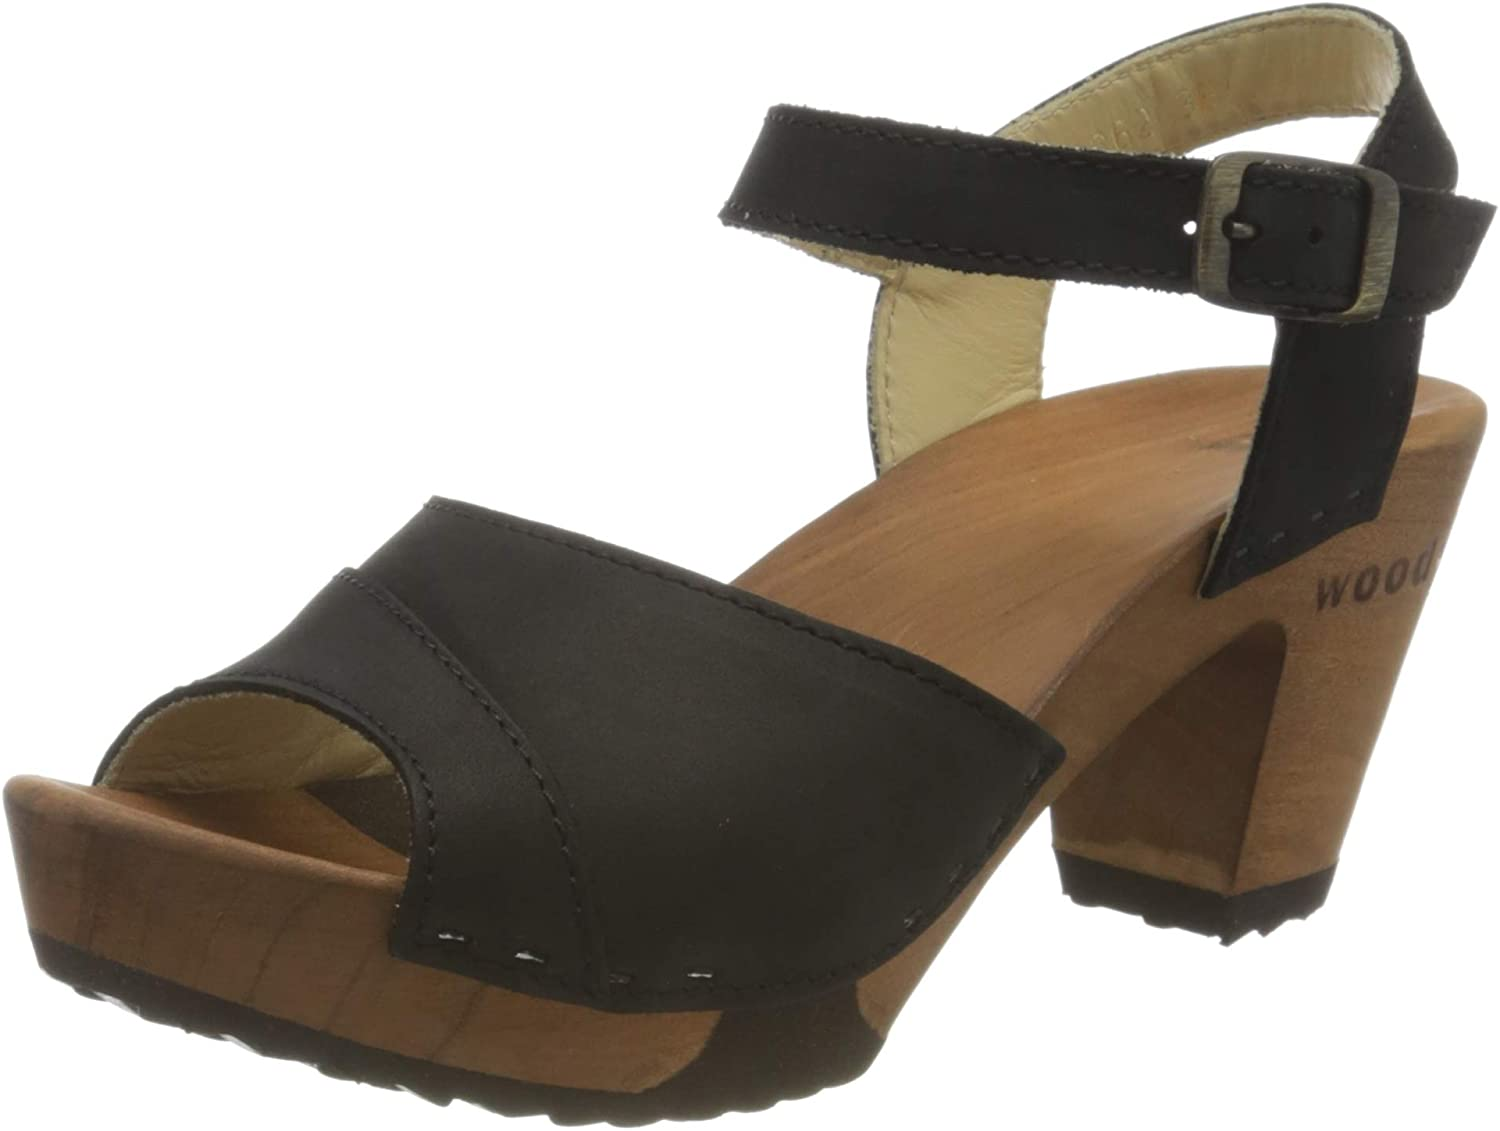 Woody Women's Mules